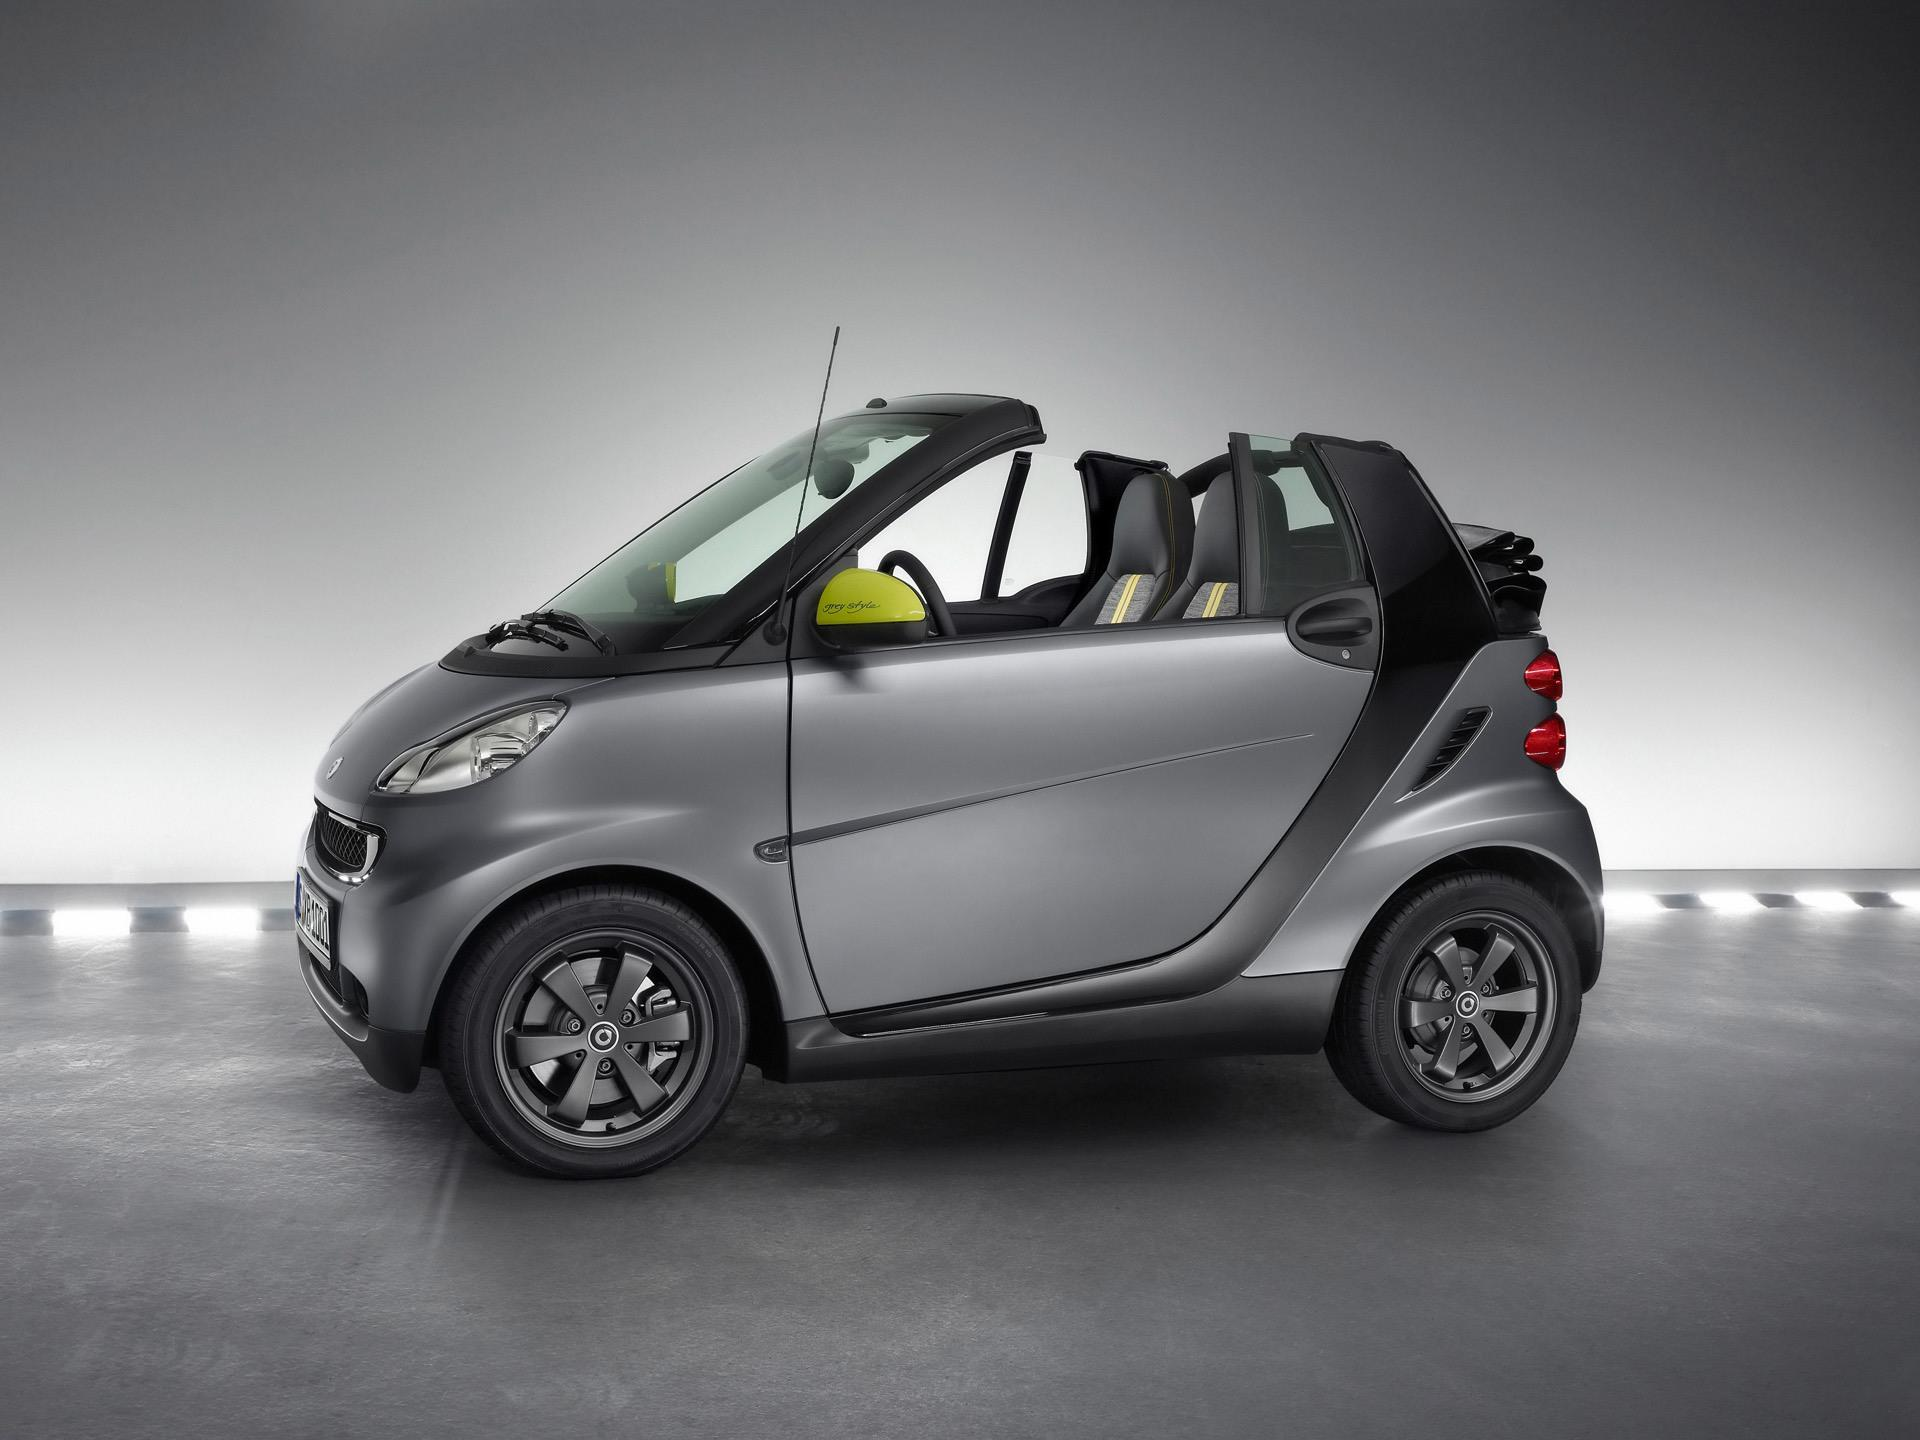 2010 smart fortwo greystyle edition pictures news research pricing conceptcarz com